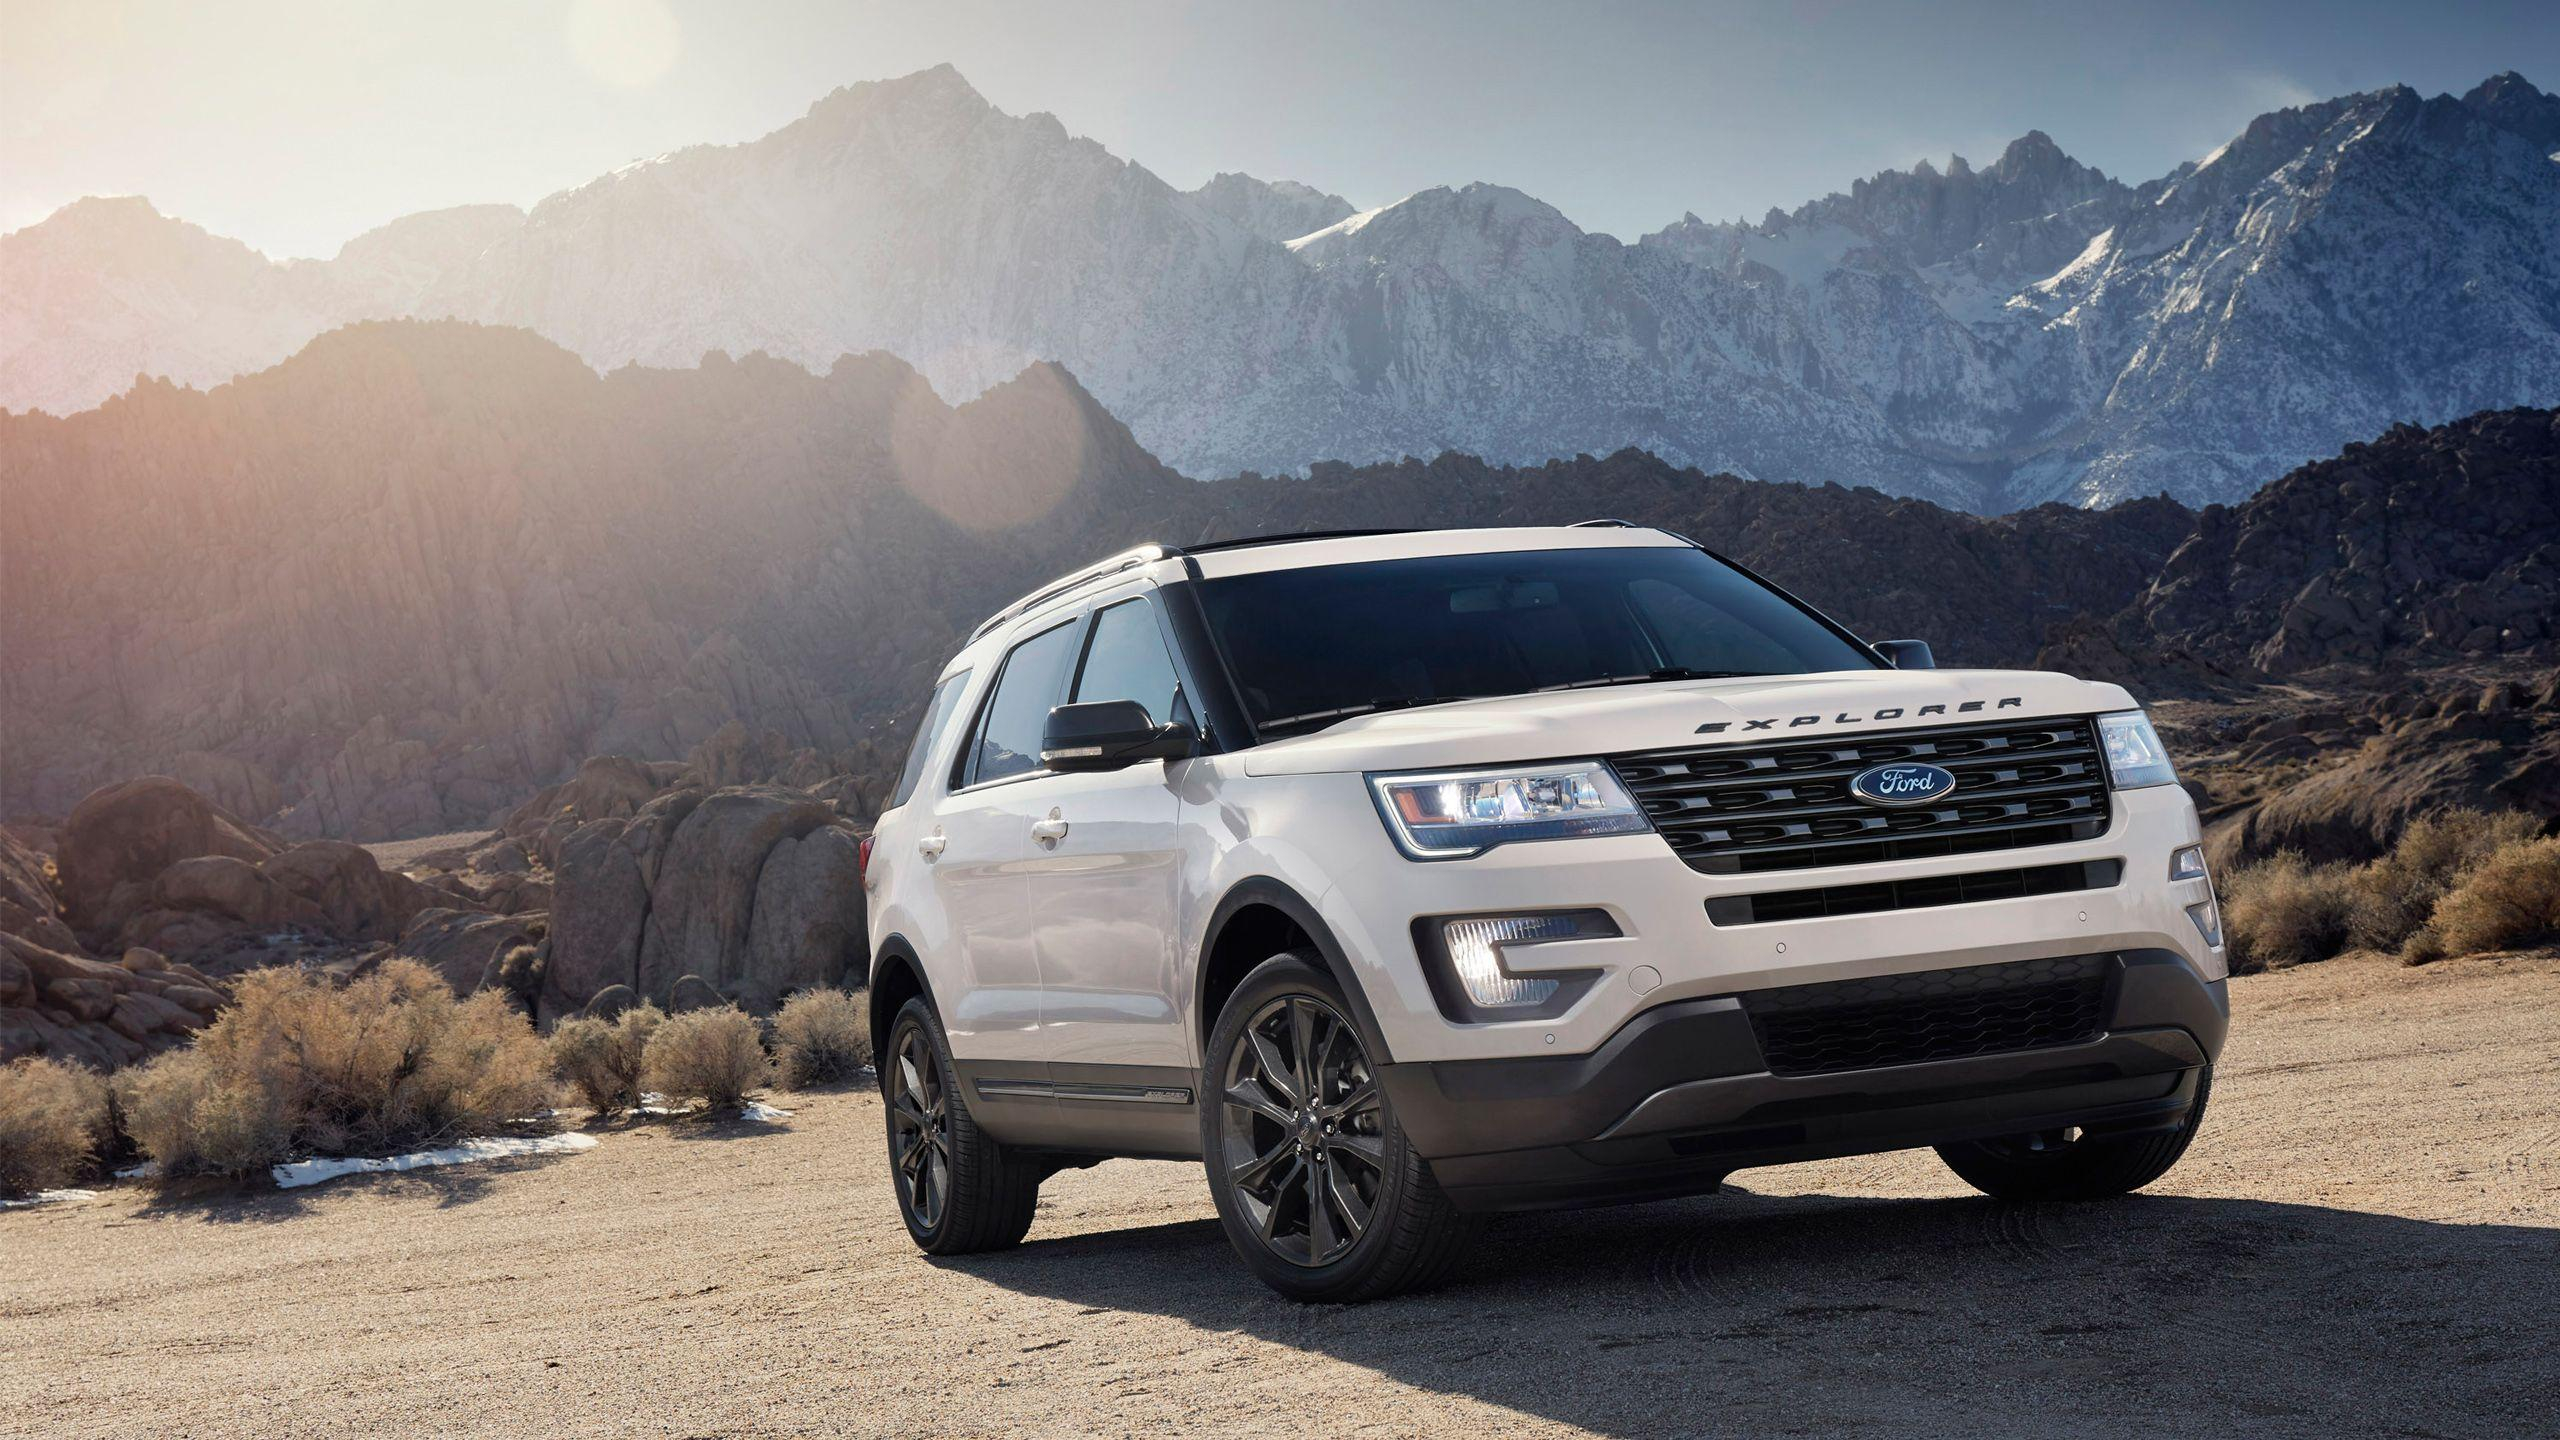 Ford Wallpapers And Hd Backgrounds Free Download On Picgaga